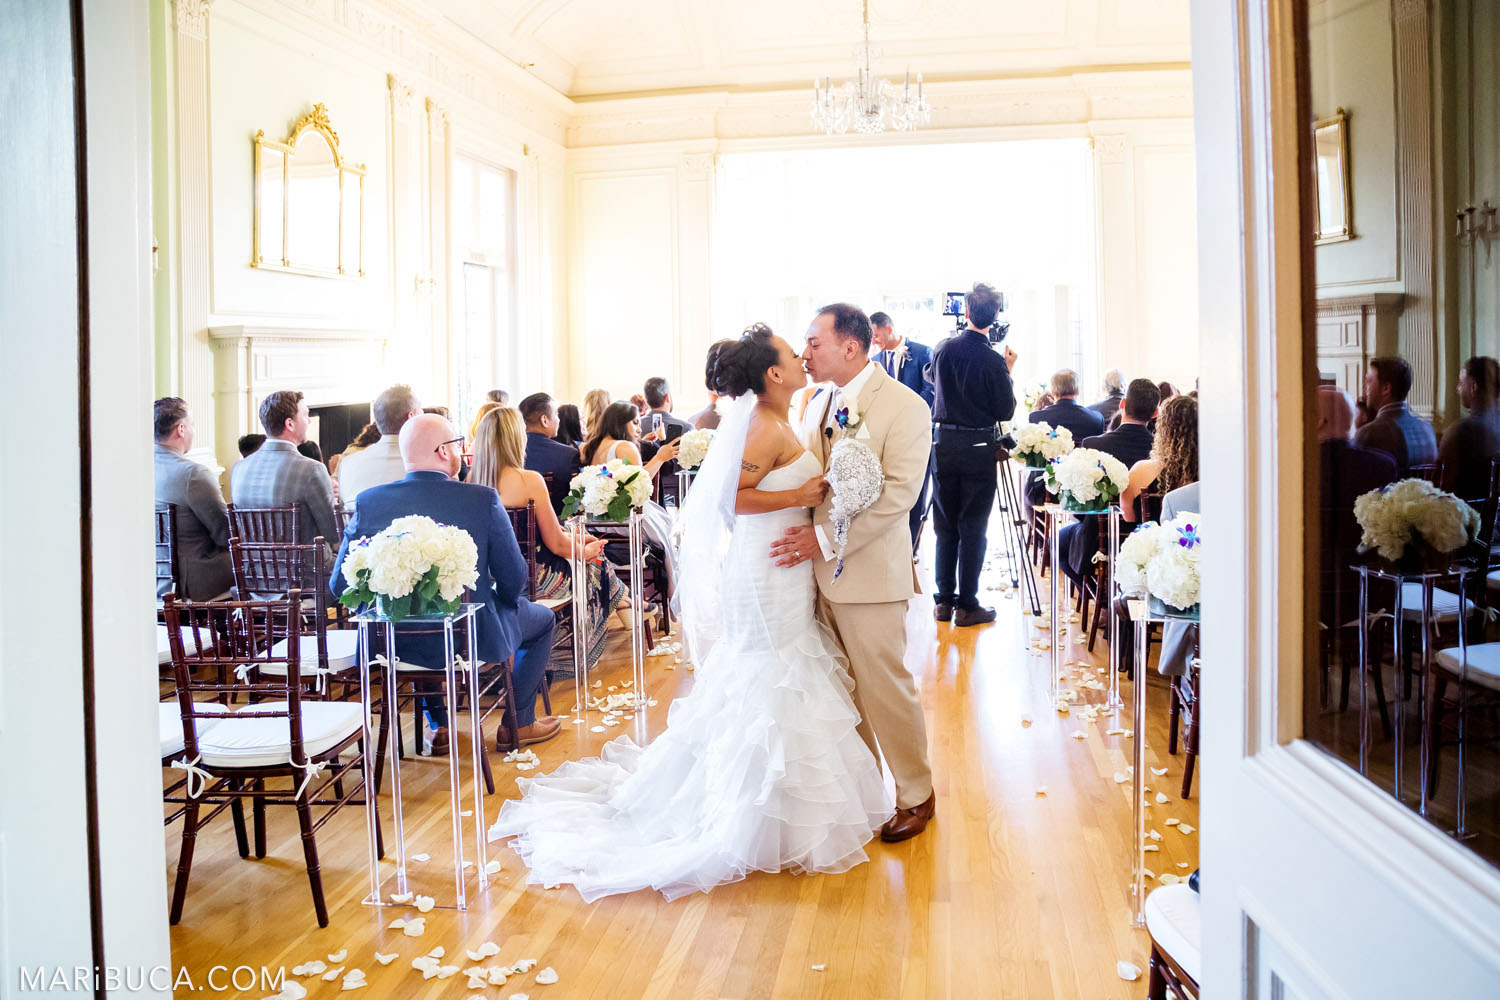 The bride and the groom kiss each other before leaving the Dining room, Kohl Mansion Wedding, Burlingame.